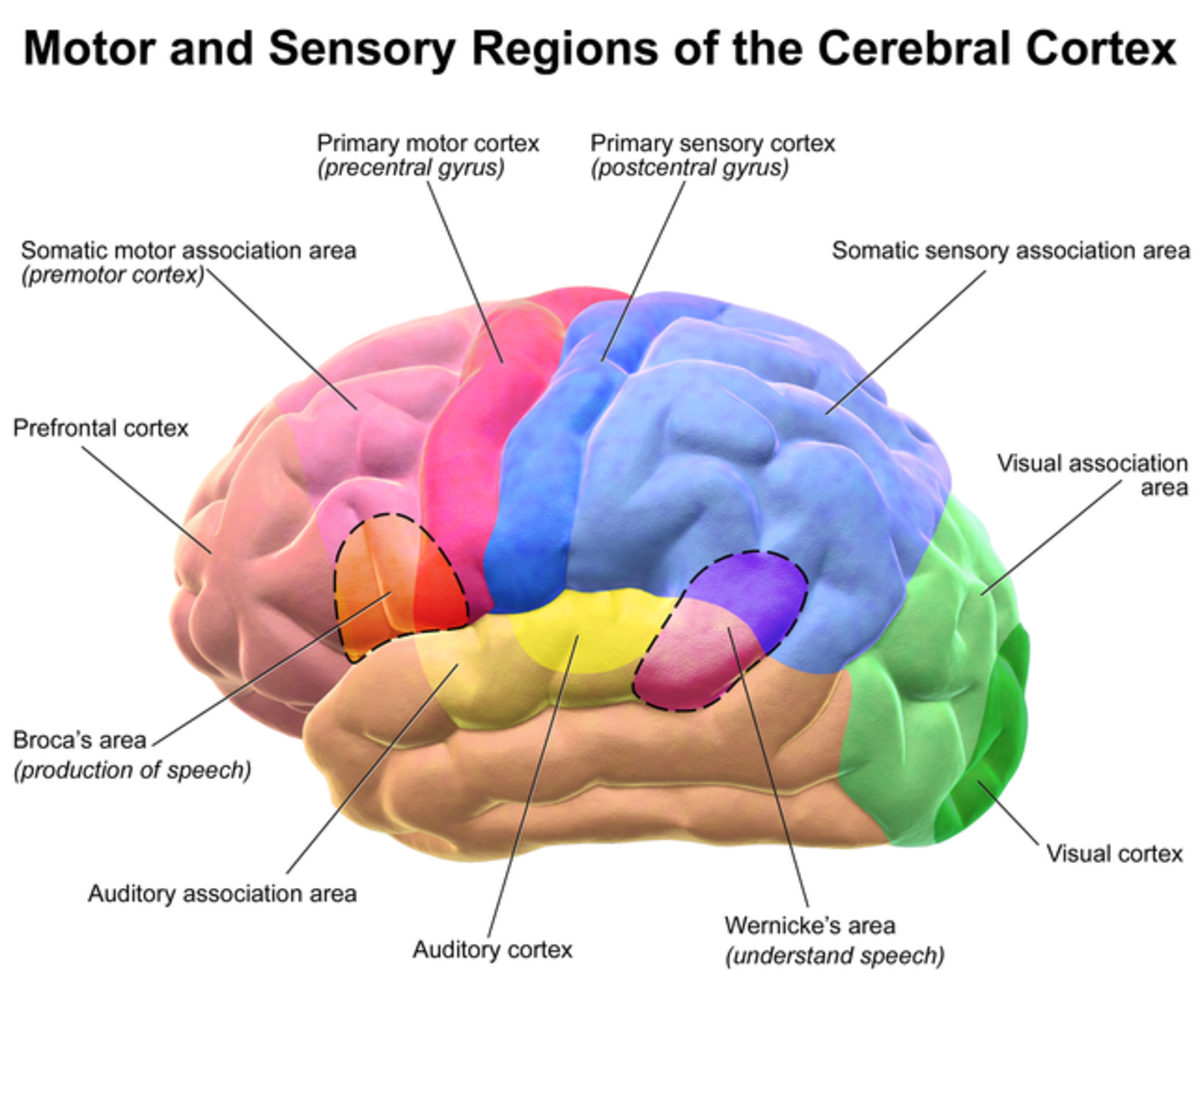 This illustration shows colour-coded lobes of the cerebral cortex. Pink = frontal lobe, blue = parietal lobe, orange = temporal lobe, green = occipital lobe